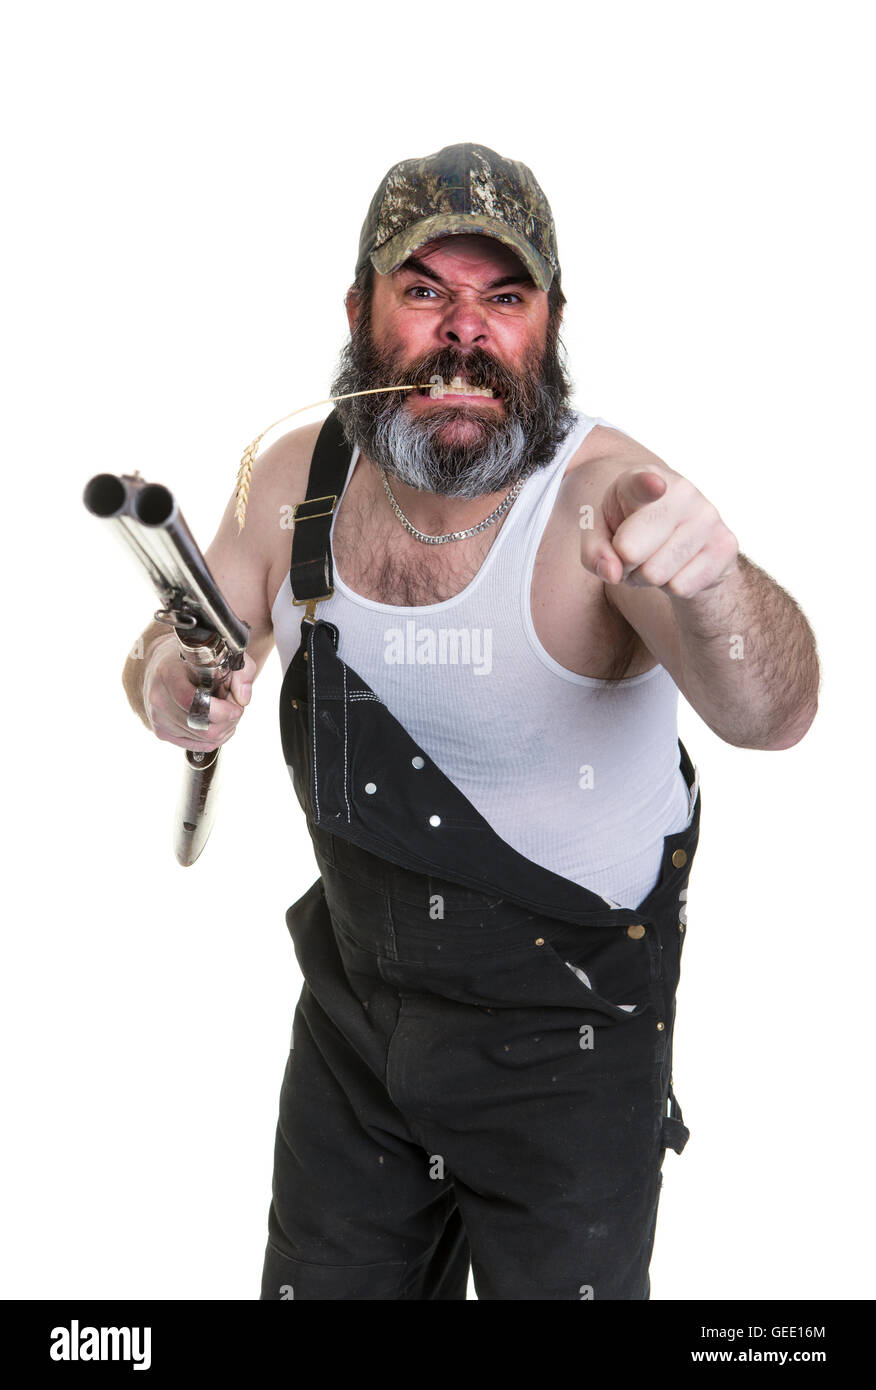 angry-hillbilly-with-shotgun-on-a-white-background-GEE16M.jpg